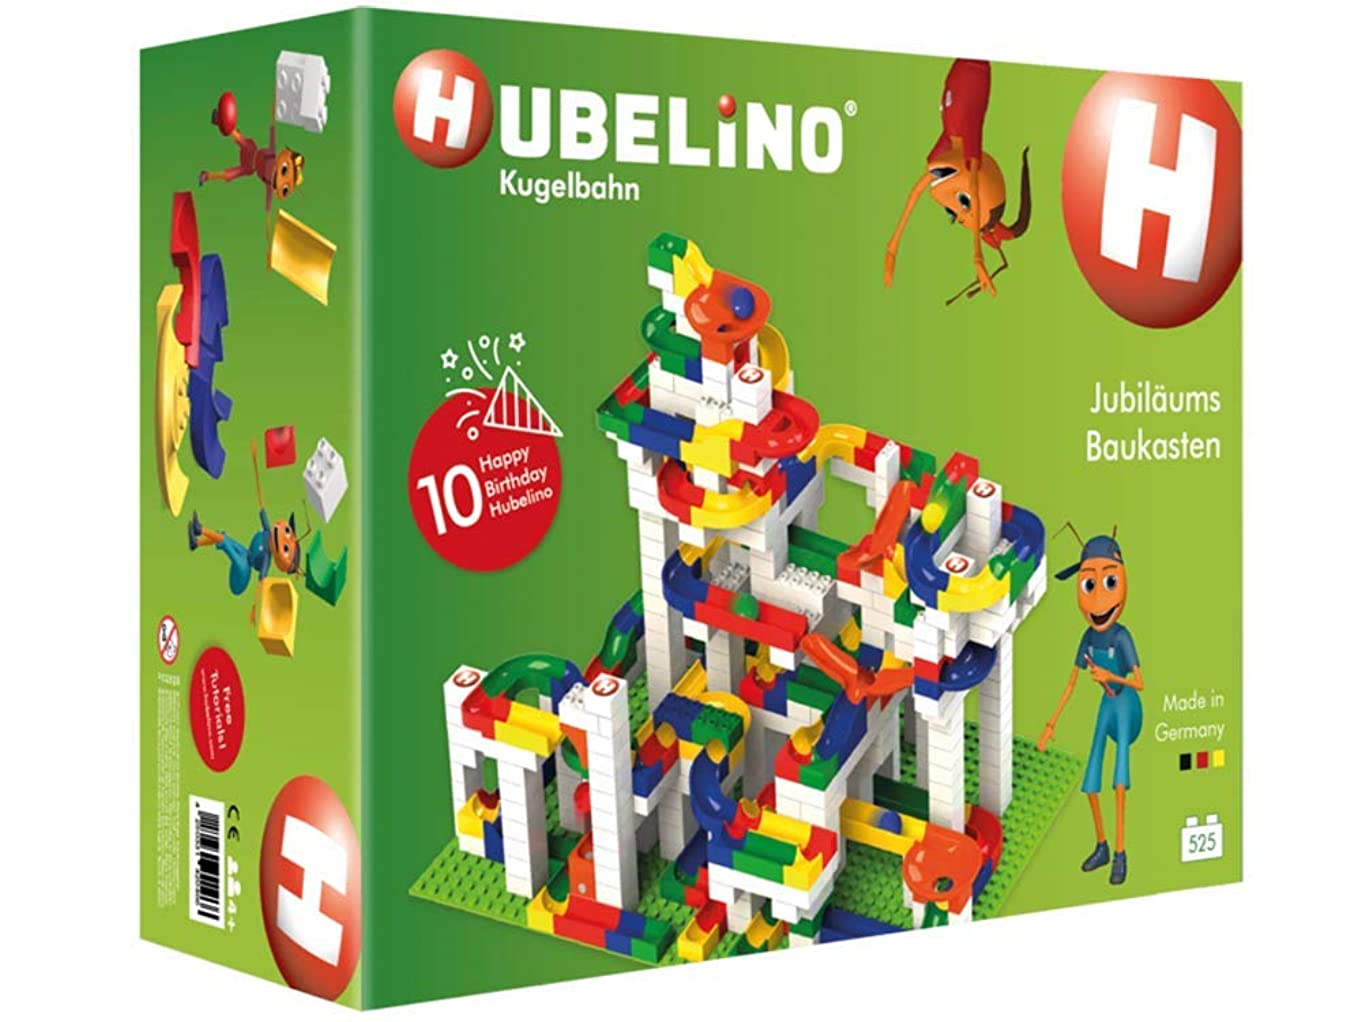 Hubelino Anniversary Building Box - 525 Piece Deluxe Set - The Original! Made in Germany! - Certified and Award-Winning Marble Run - 100% Compatible with Duplo